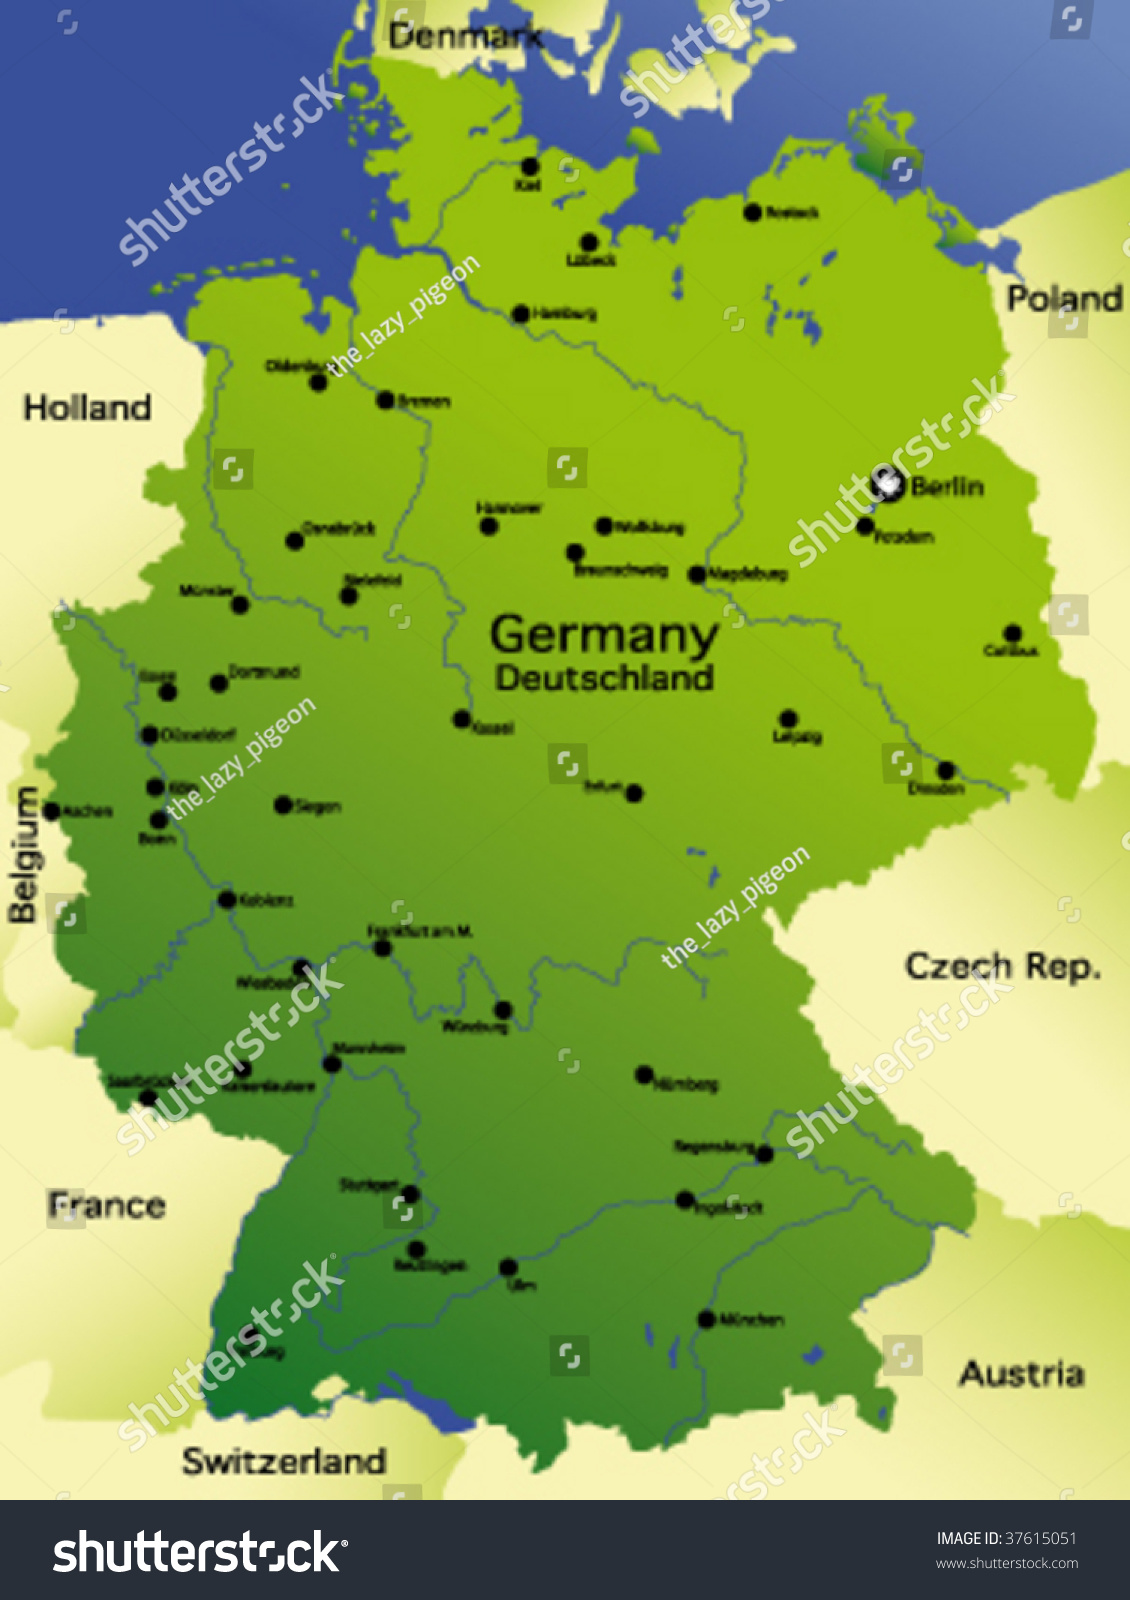 detailed map of germany - Ecosia